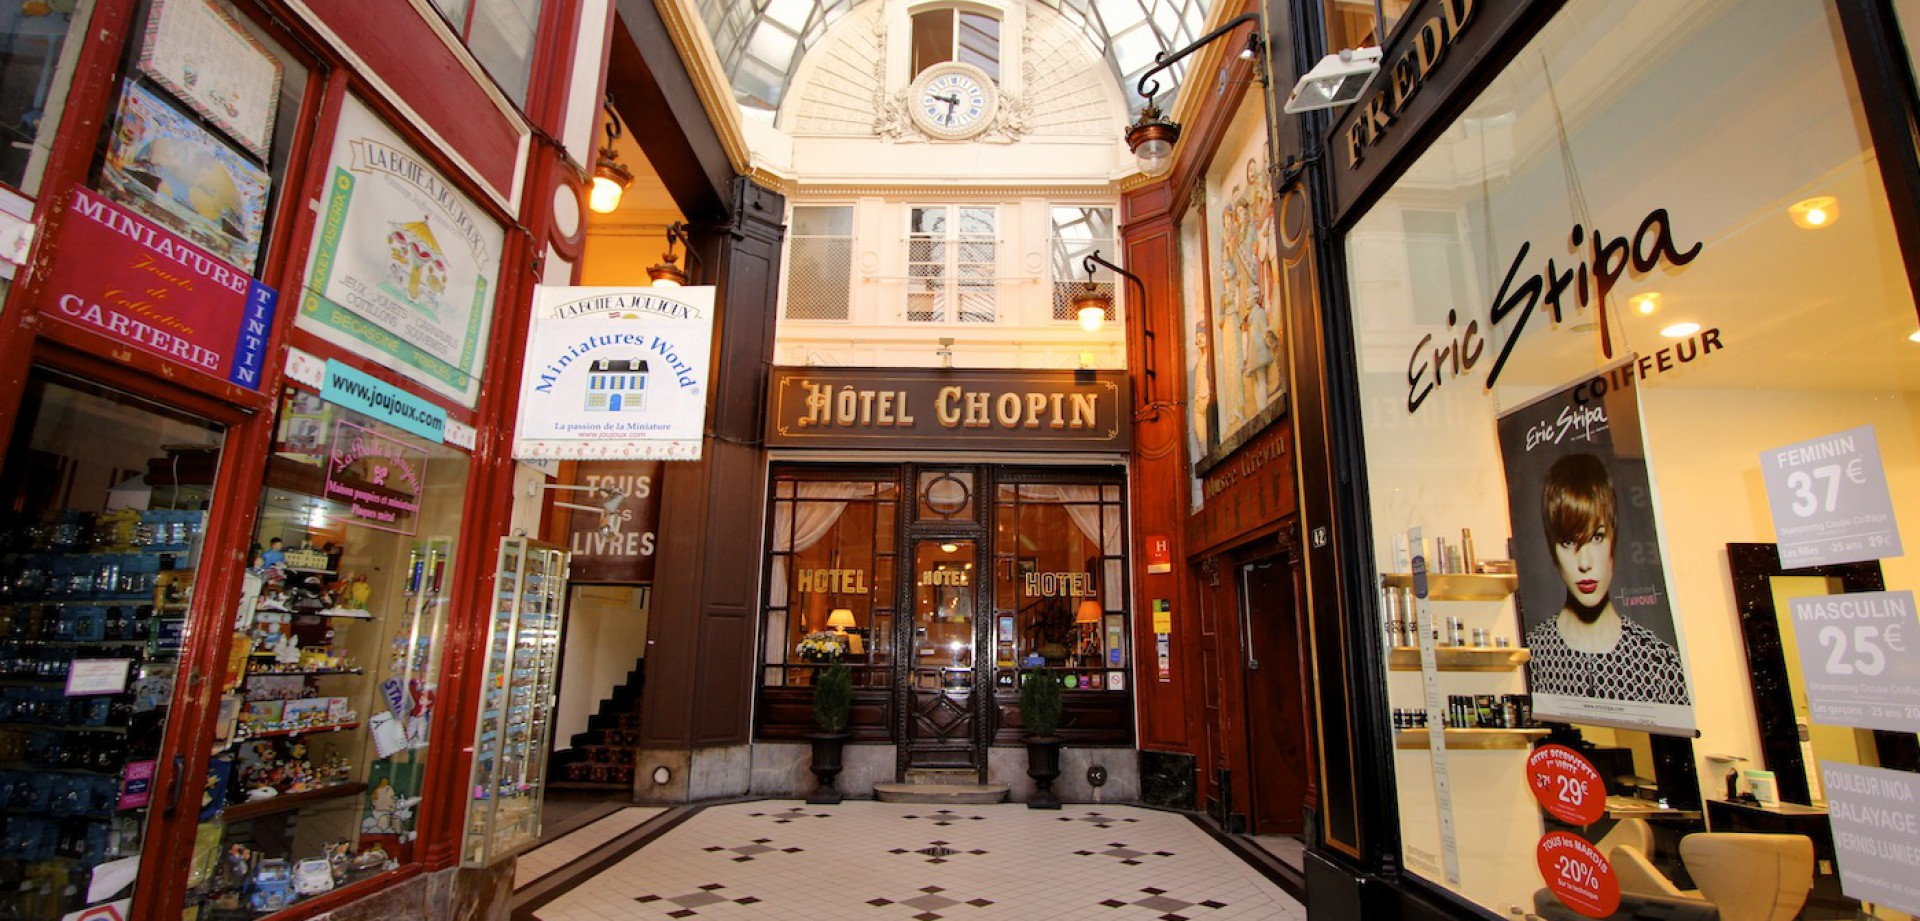 Hotel Chopin Paris Reservation